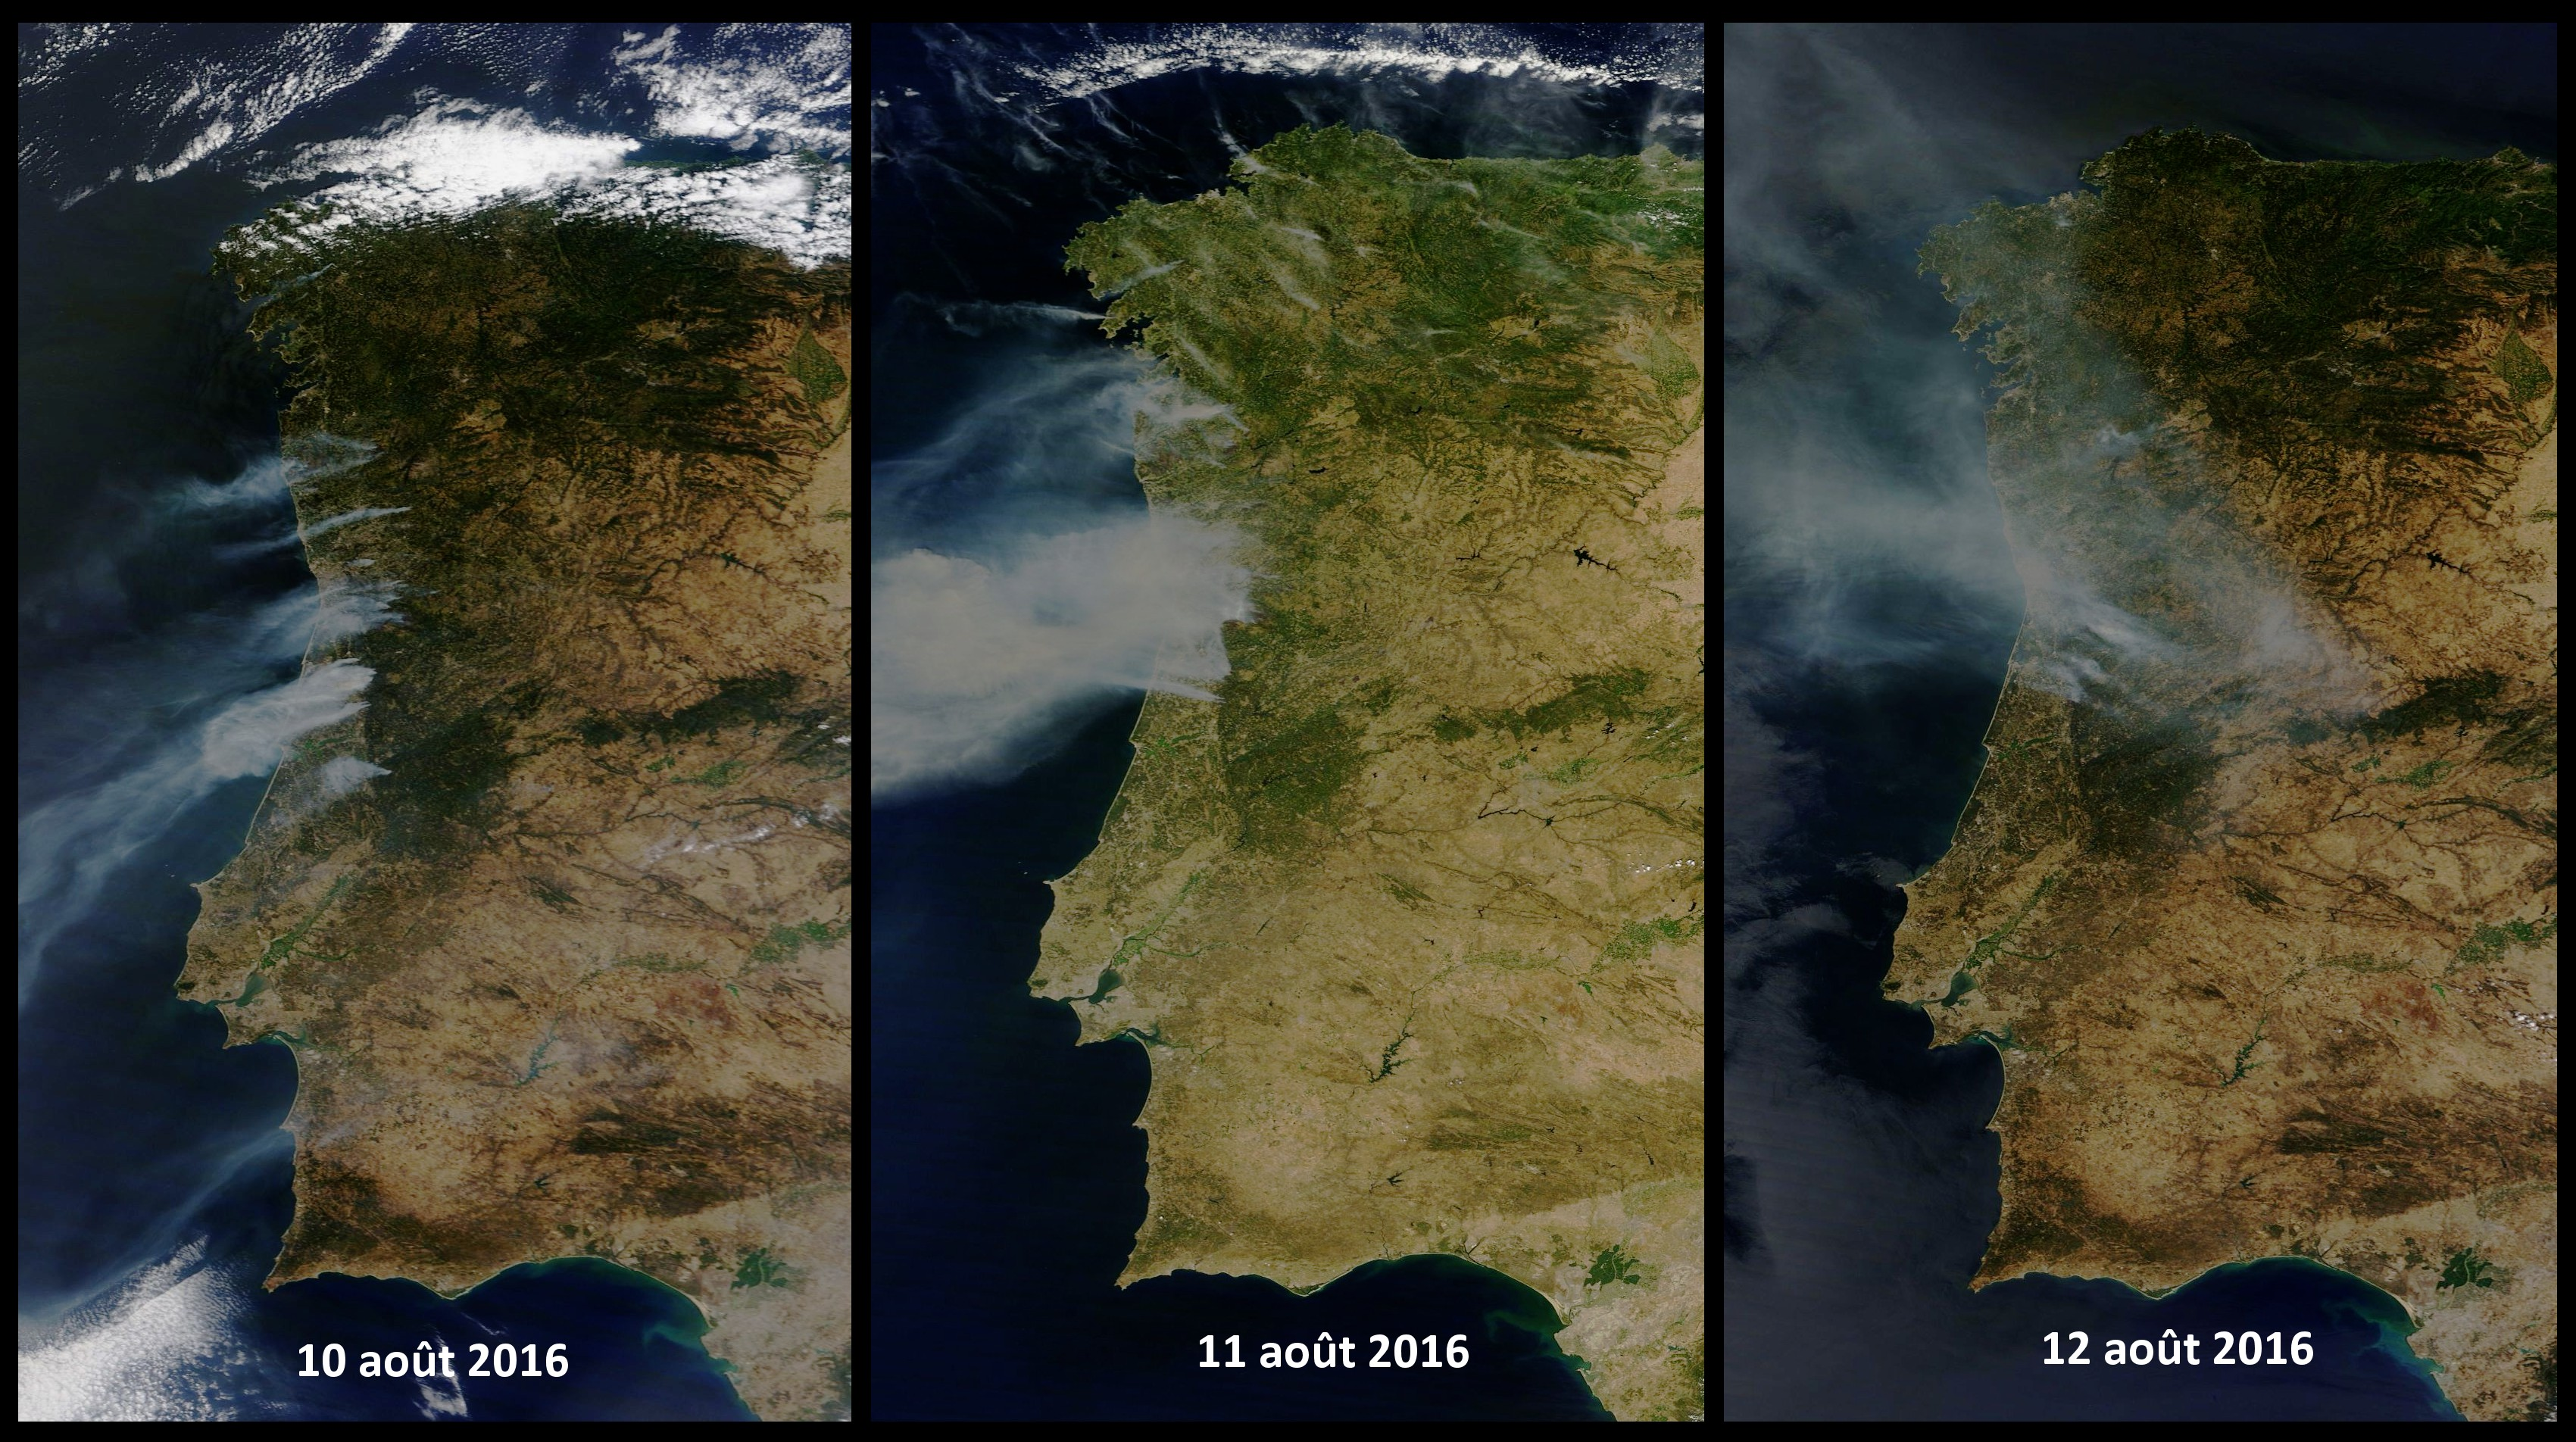 Incendies - Portugal - Août 2016 - EU Civil protection mechanism - Terra - MODIS - satellite d'observation - Fumée - Fire - Smoke - NASA - Worldview